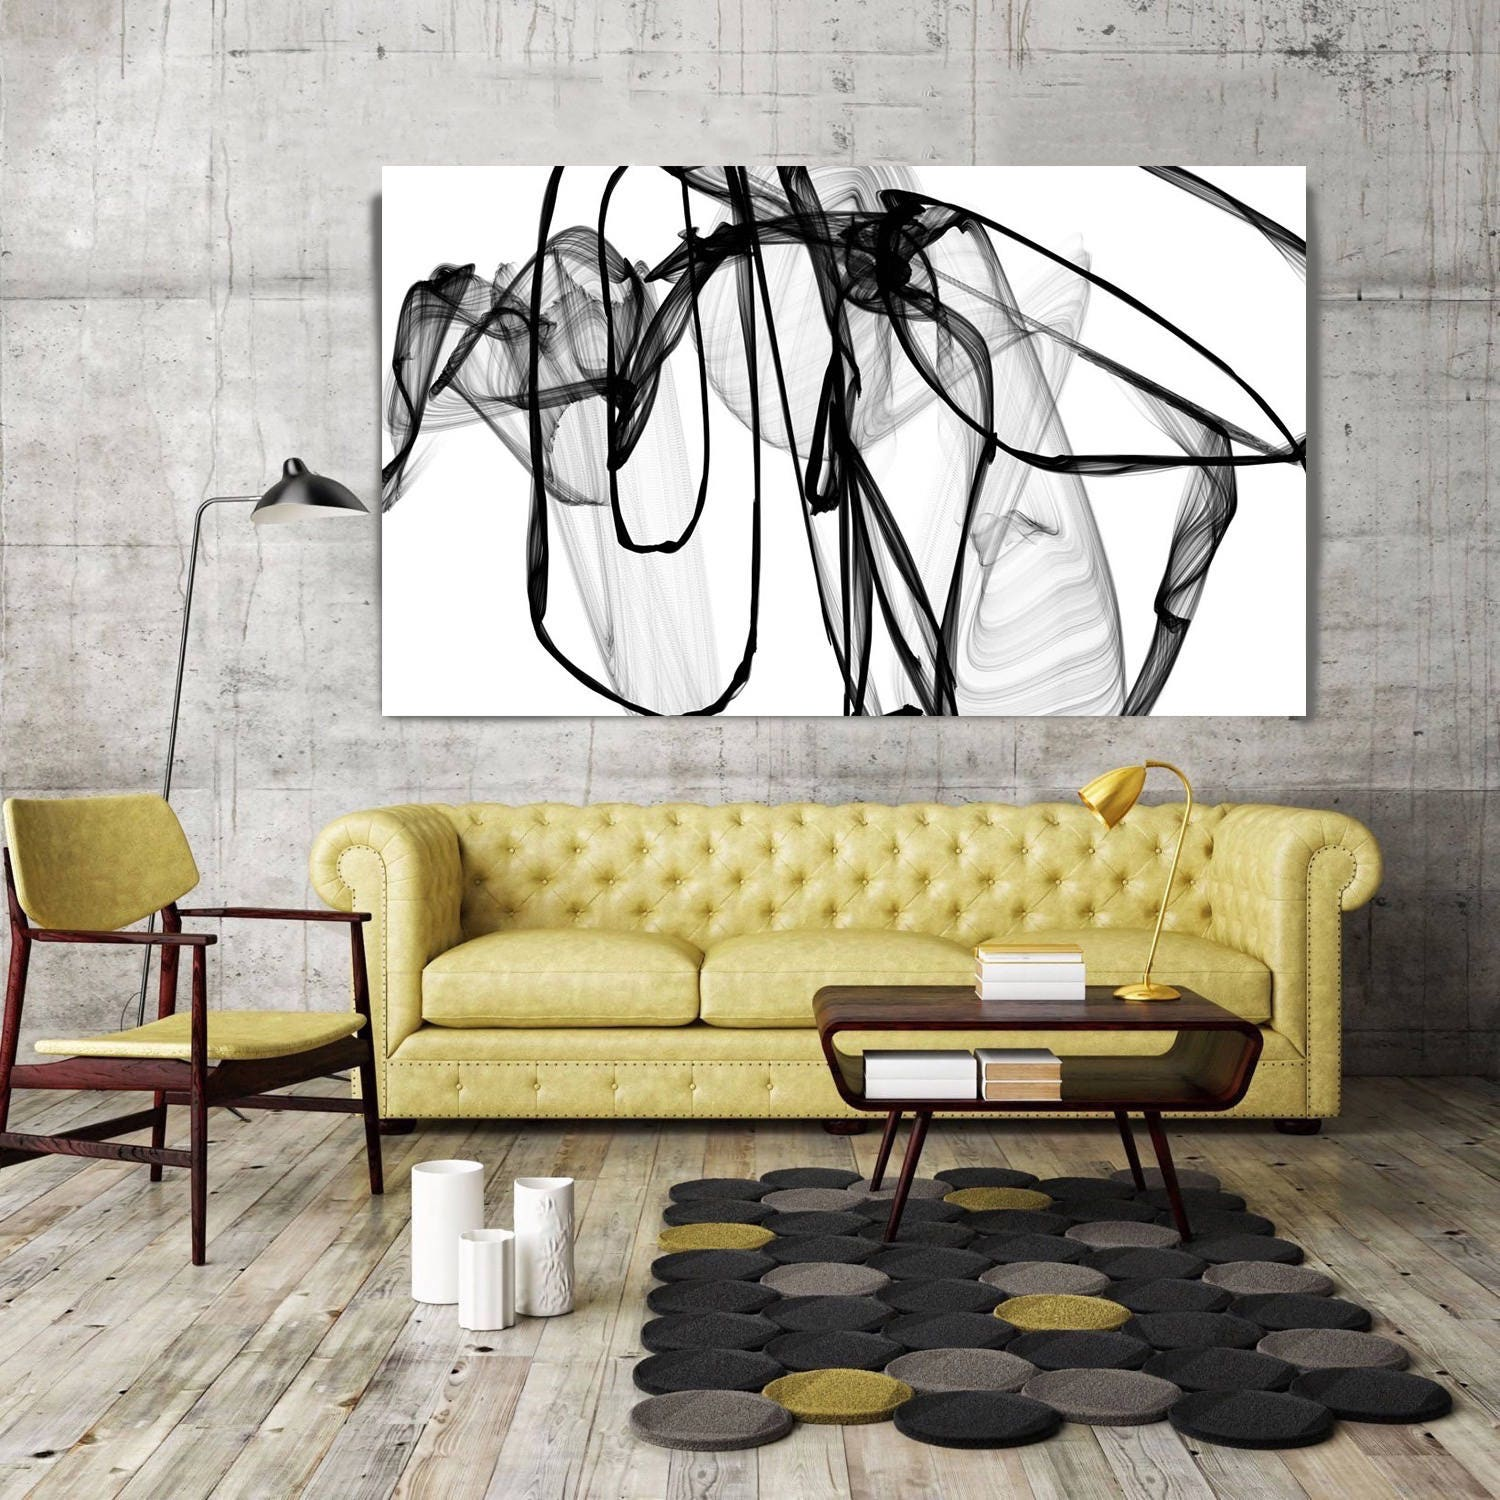 Abstract Expressionism in Black And White 17, Contemporary Abstract ...